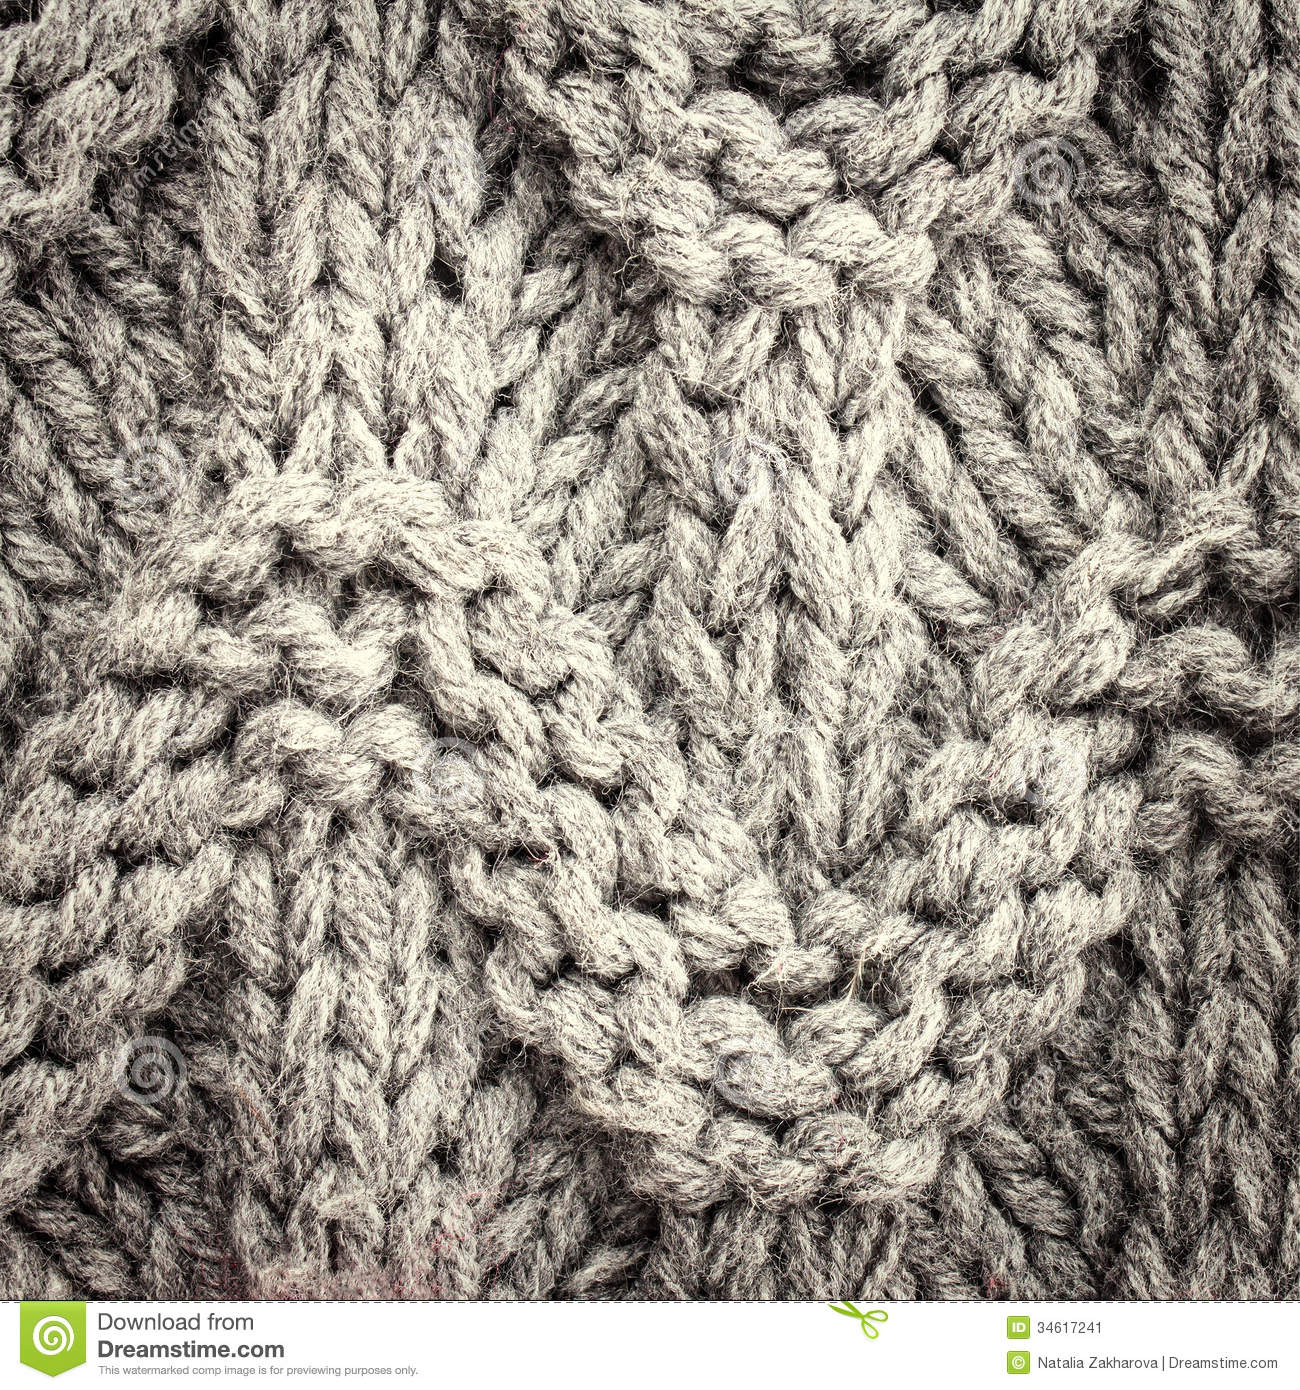 ... Image: Grey knitting background texture, Knit woolen Christmas festiv